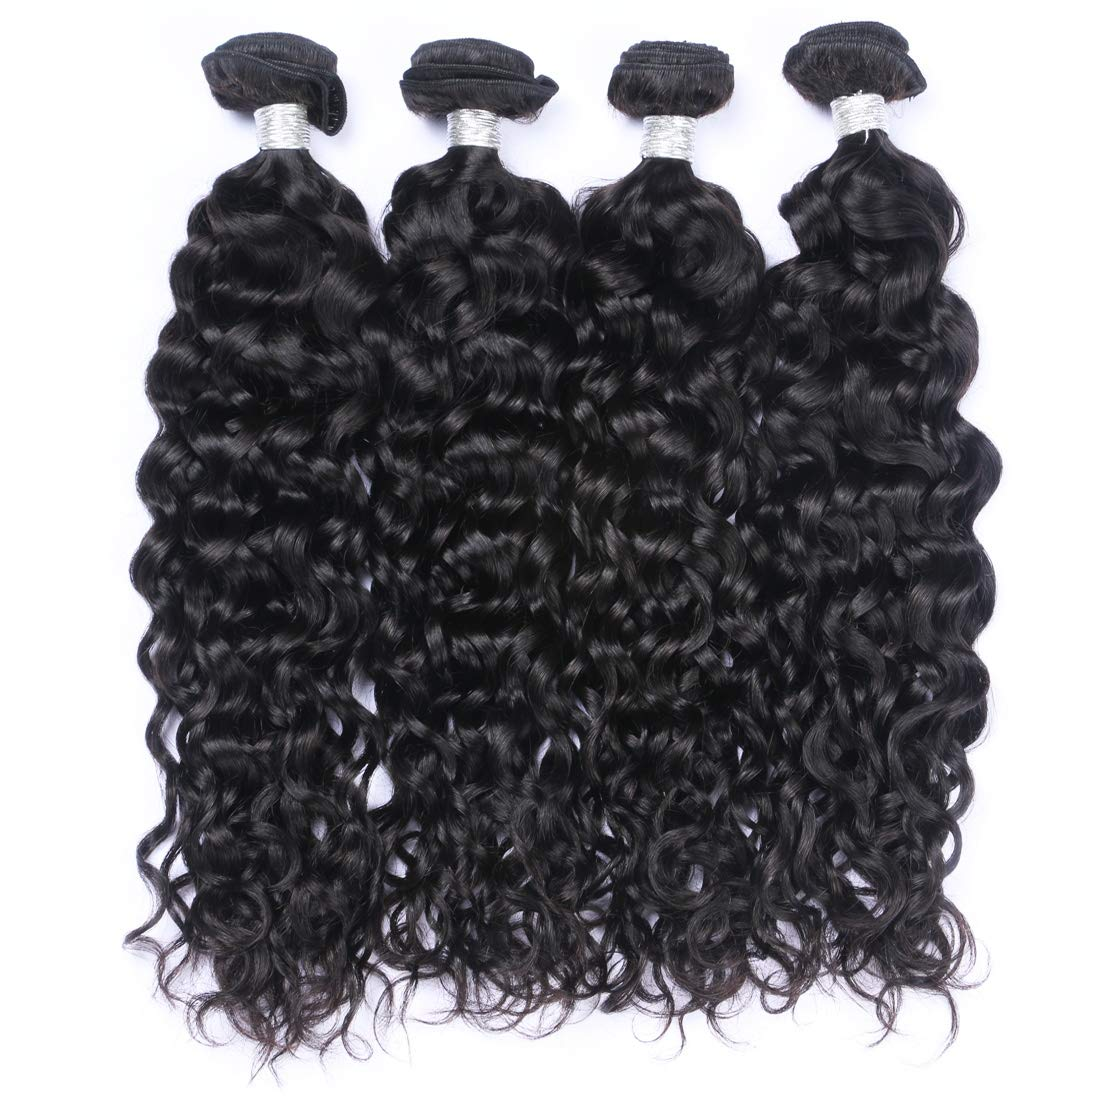 8A Peruvian Hair Bundles Water Wave Natural Wave Hair Bundles Wet and Wavy Deep Curly Weave Human Hair Bundles 100% Remy Human Hair Extensions Natural